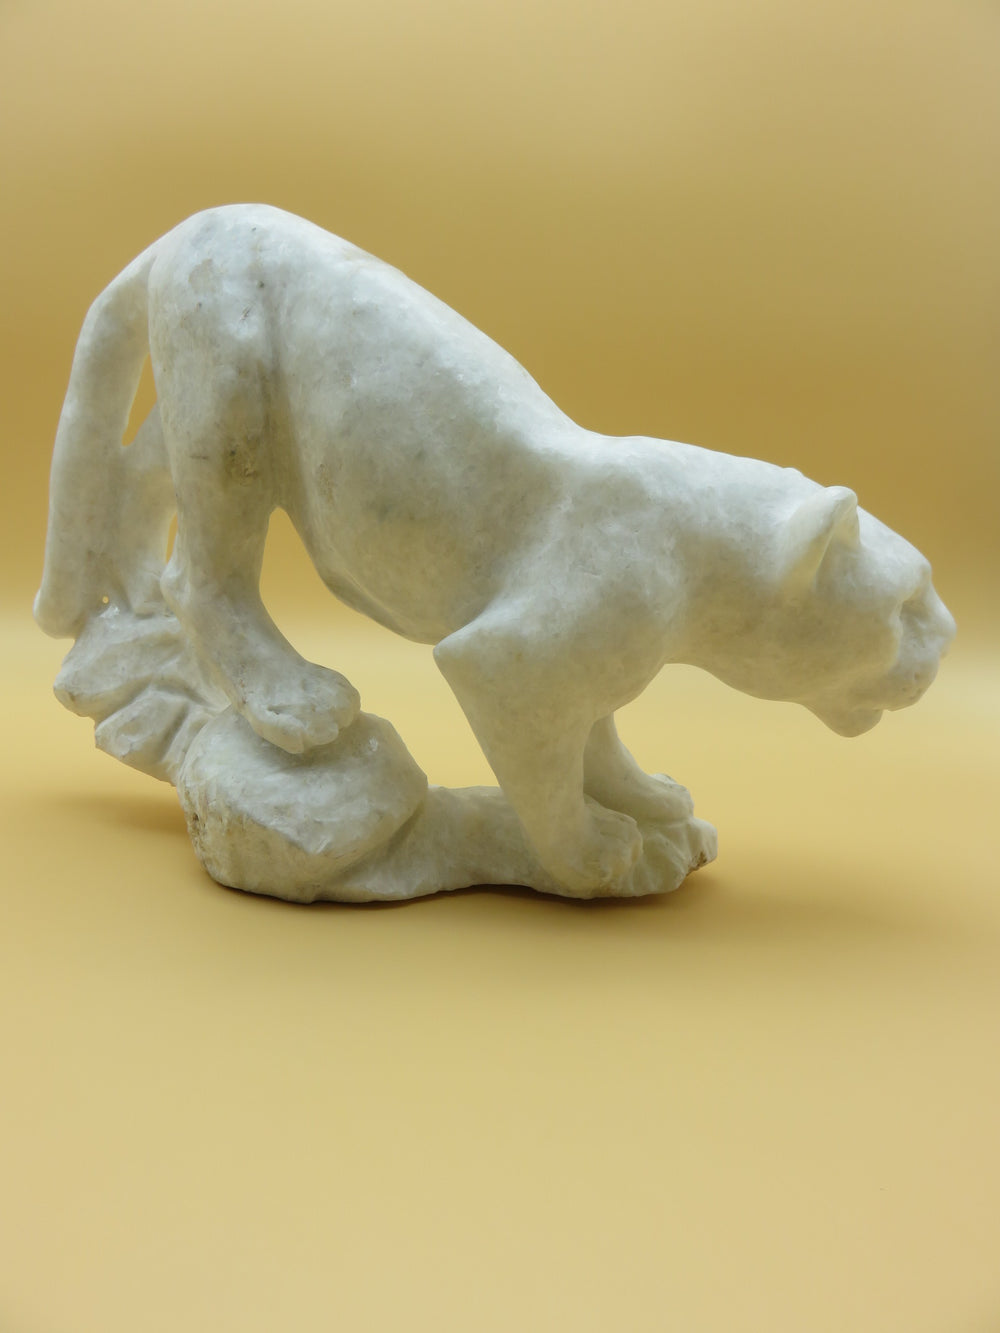 Hand Carved Jaguar<br><span style='font-size:75%'>from Dolomite Stone<br>8.46 x 13.38 x 3.54'', 11.79 lbs</span>